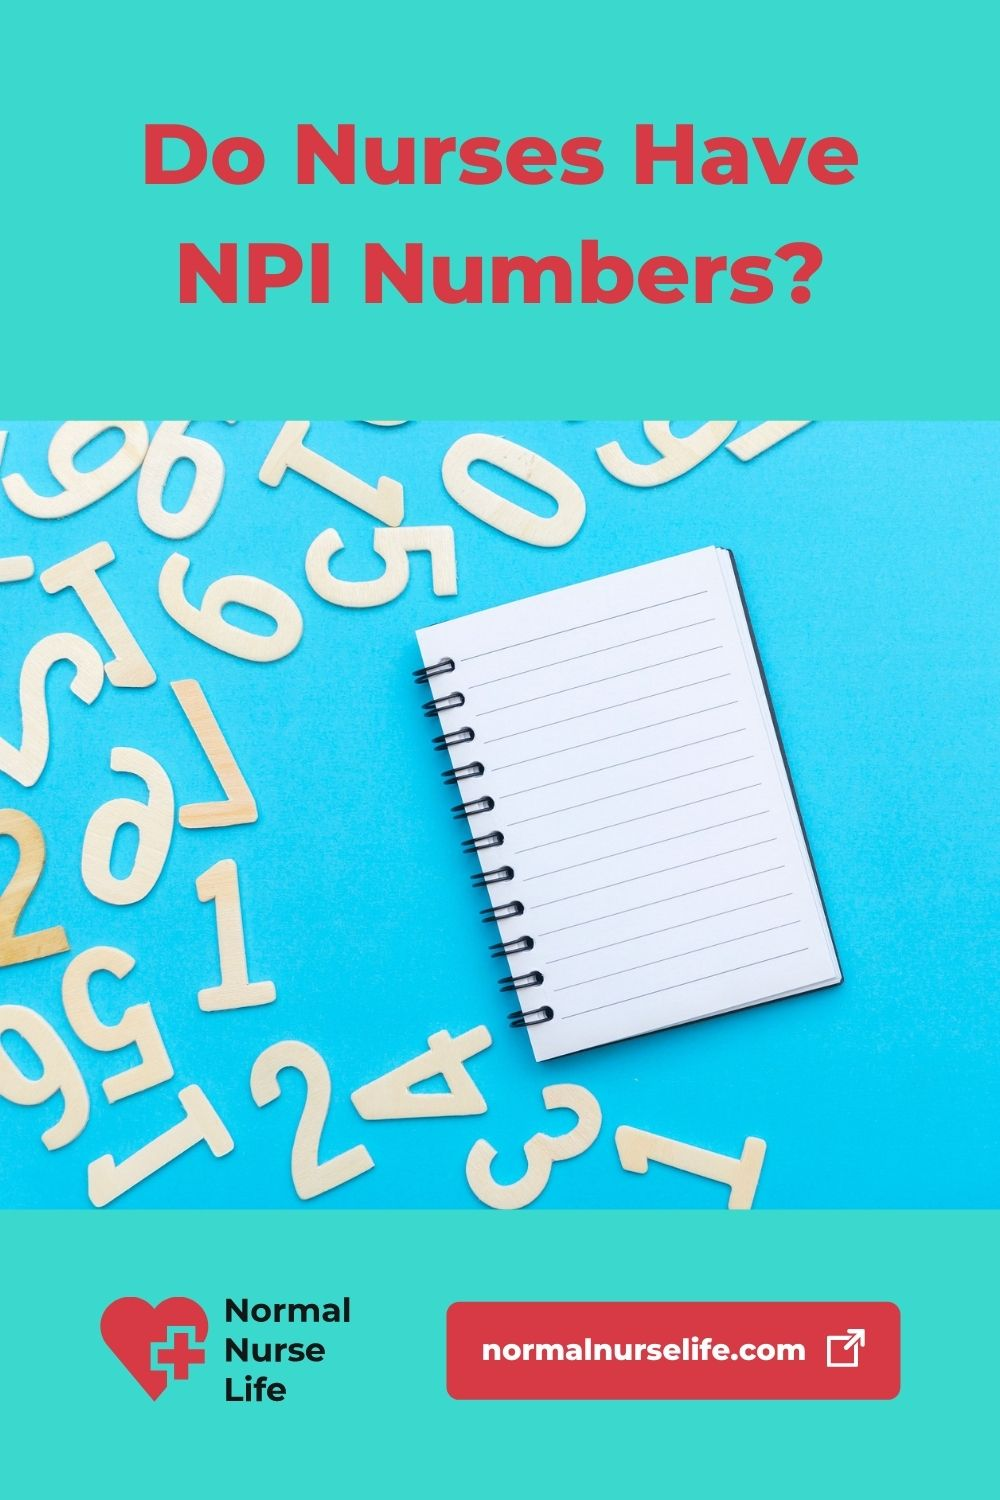 Do nurses have NPI numbers or not